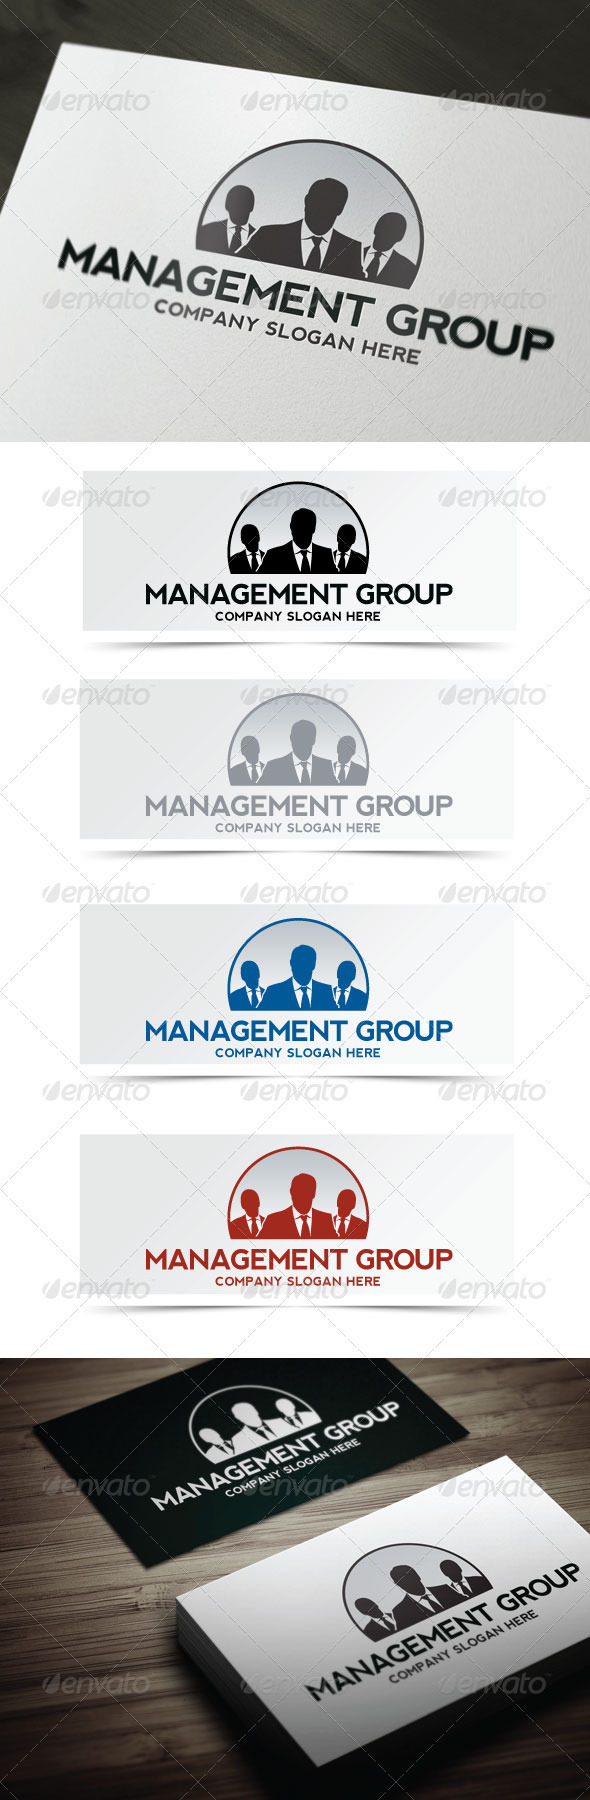 Management Group - Humans Logo Templates